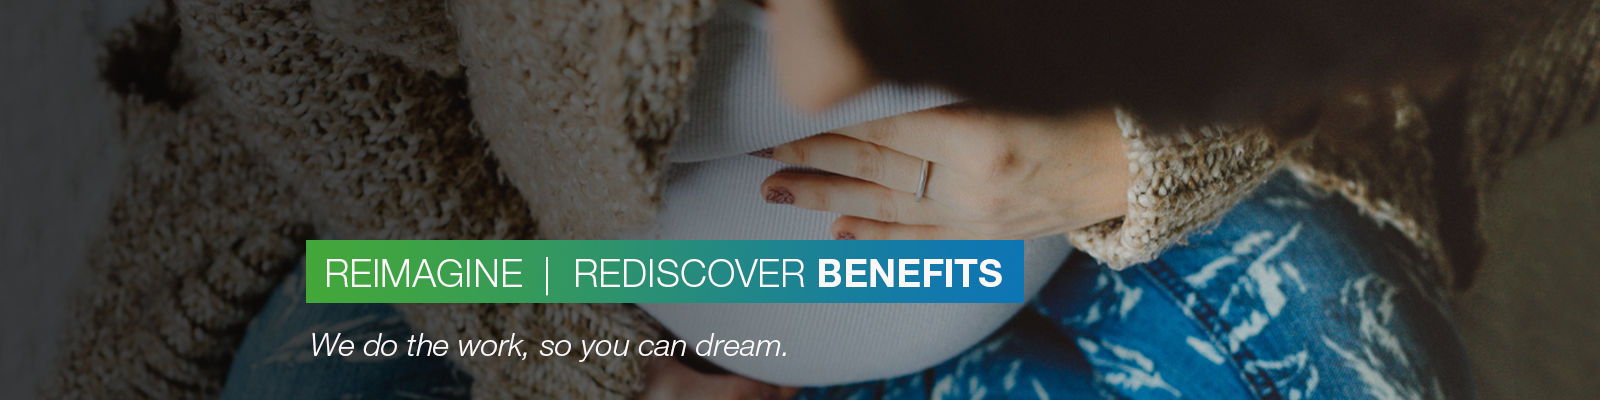 REIMAGINE | REDISCOVER BENEFITS: We do the work, so you can dream.